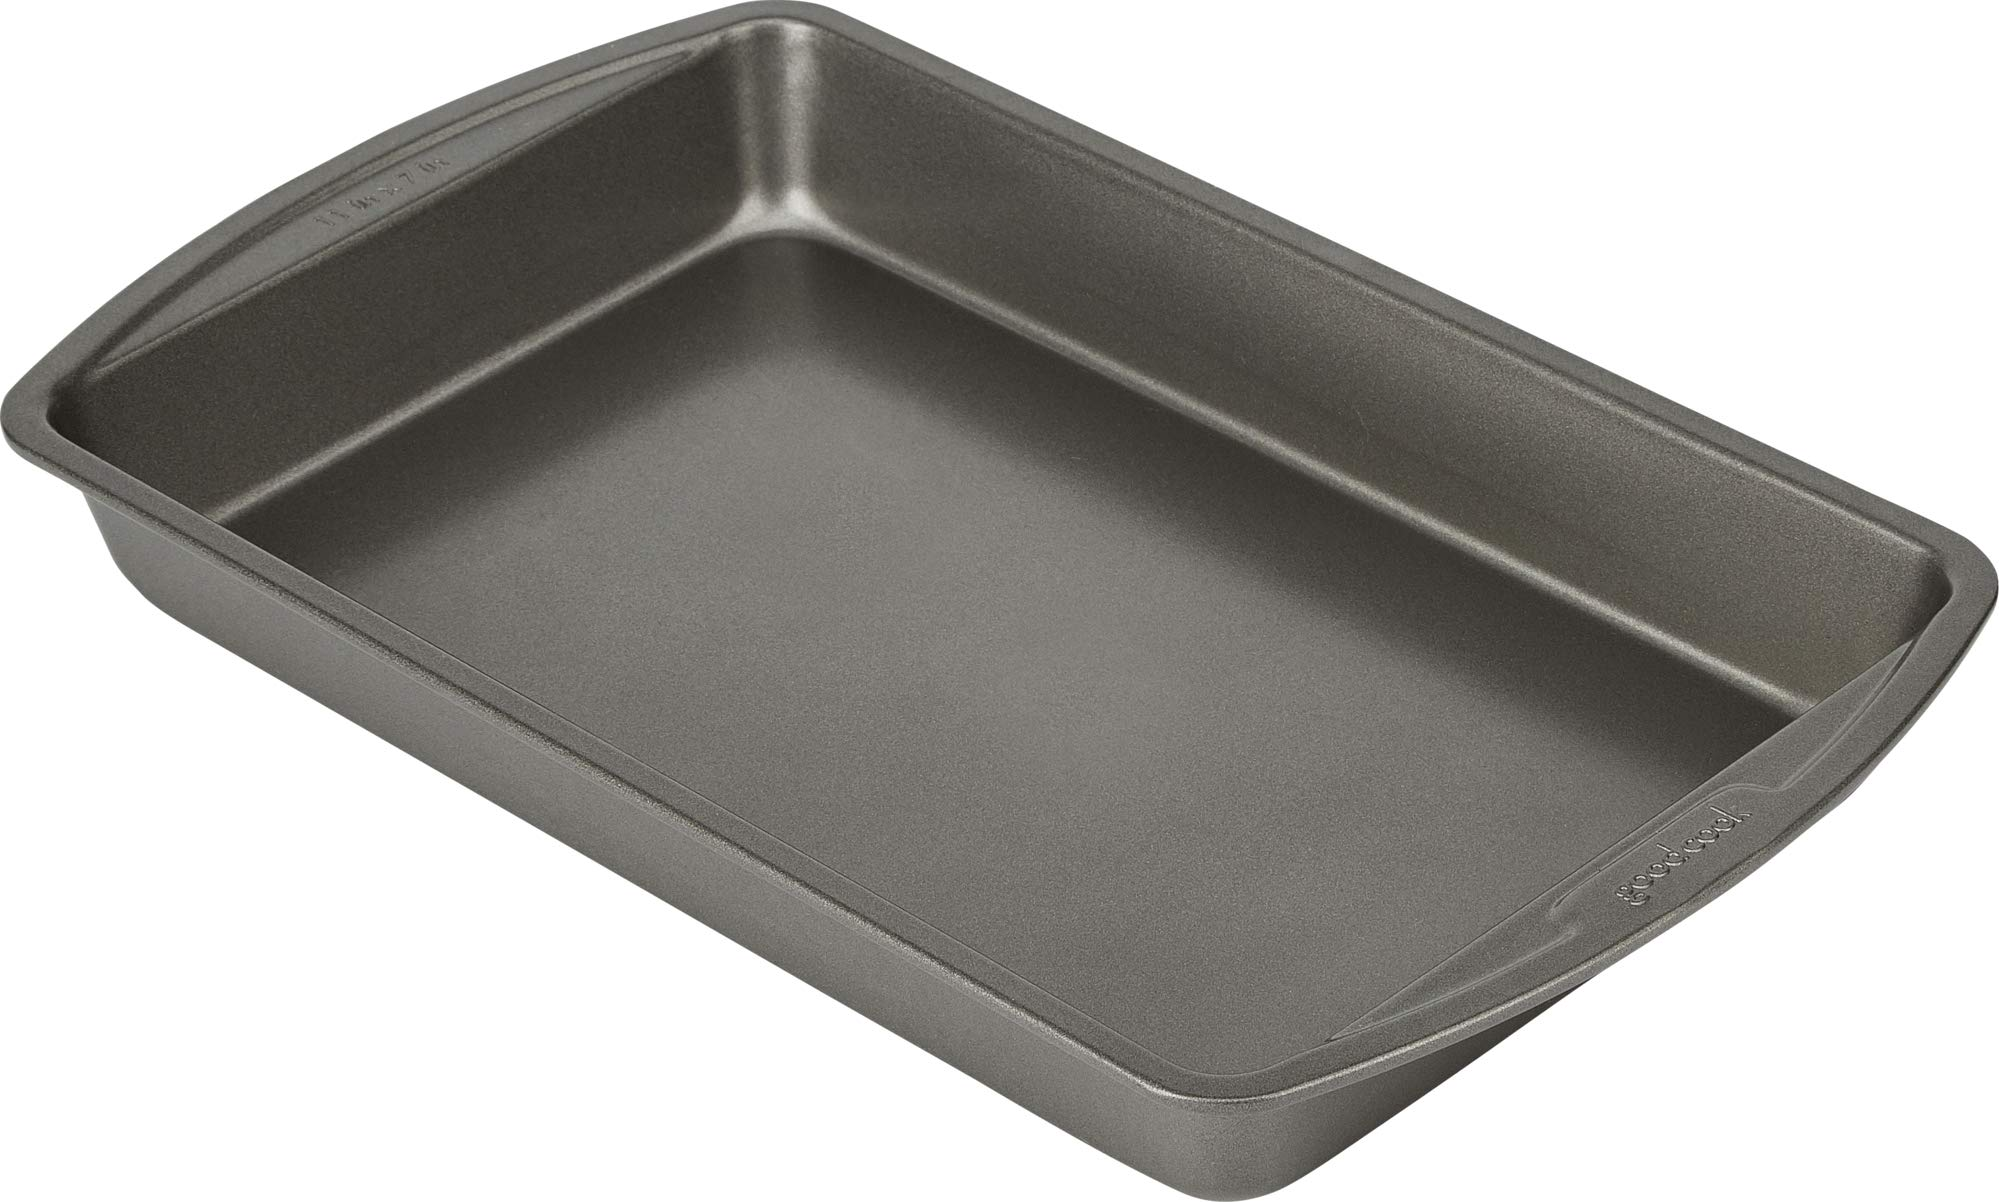 Good Cook 11 Inch x 7 Inch Biscuit/ Brownie Pan